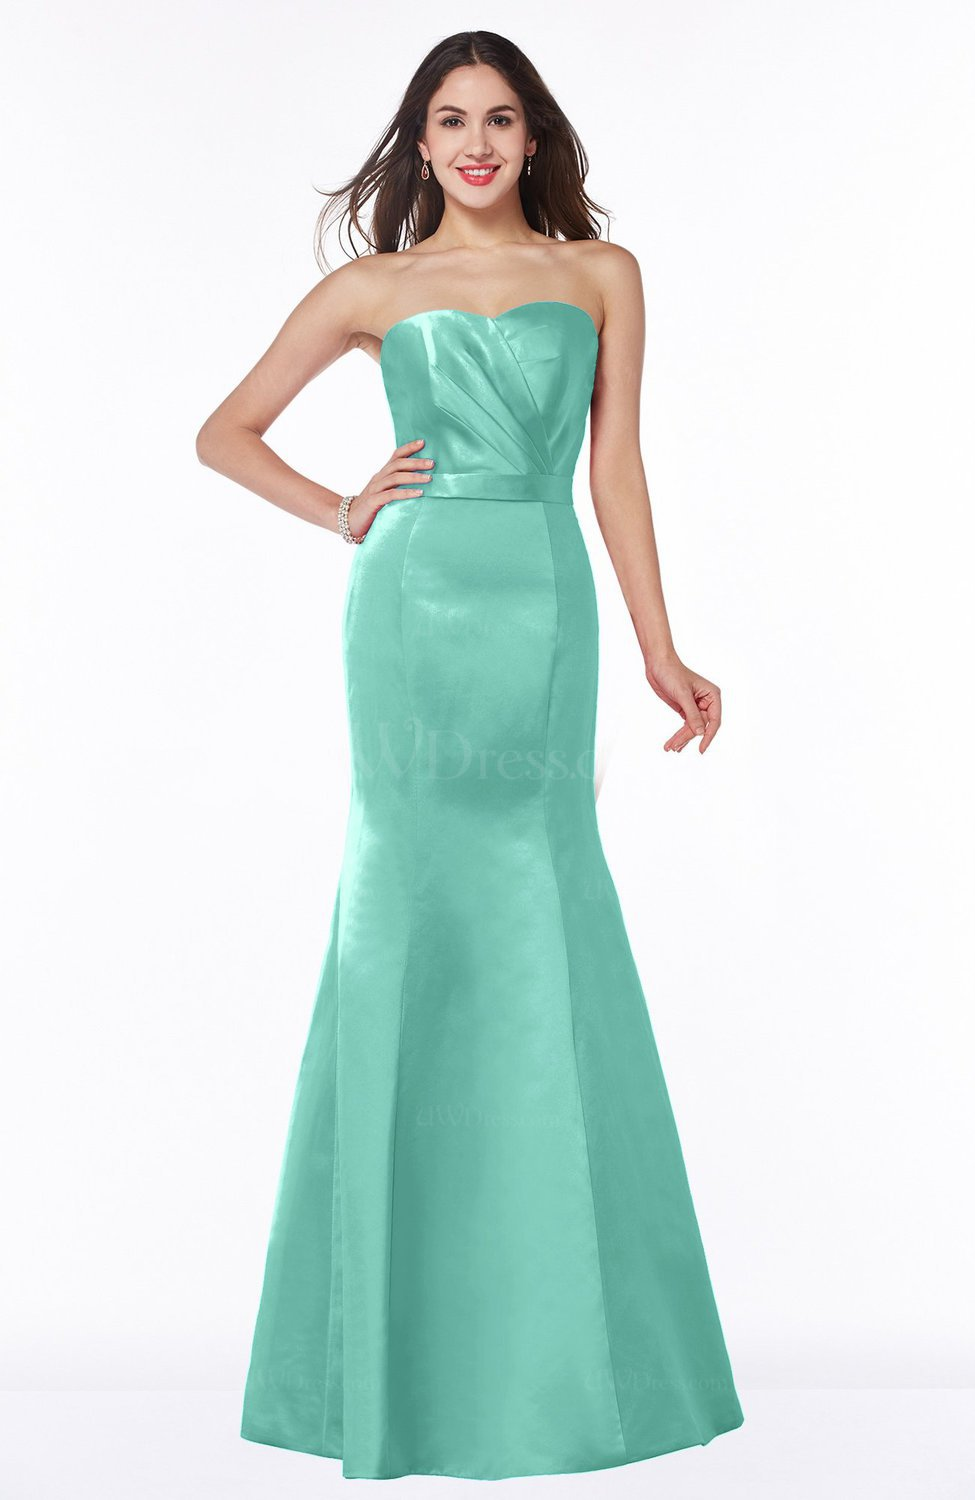 d5dc7891296 Mint Green Glamorous Sweetheart Sleeveless Half Backless Floor Length  Ruching Bridesmaid Dresses (Style D21414)